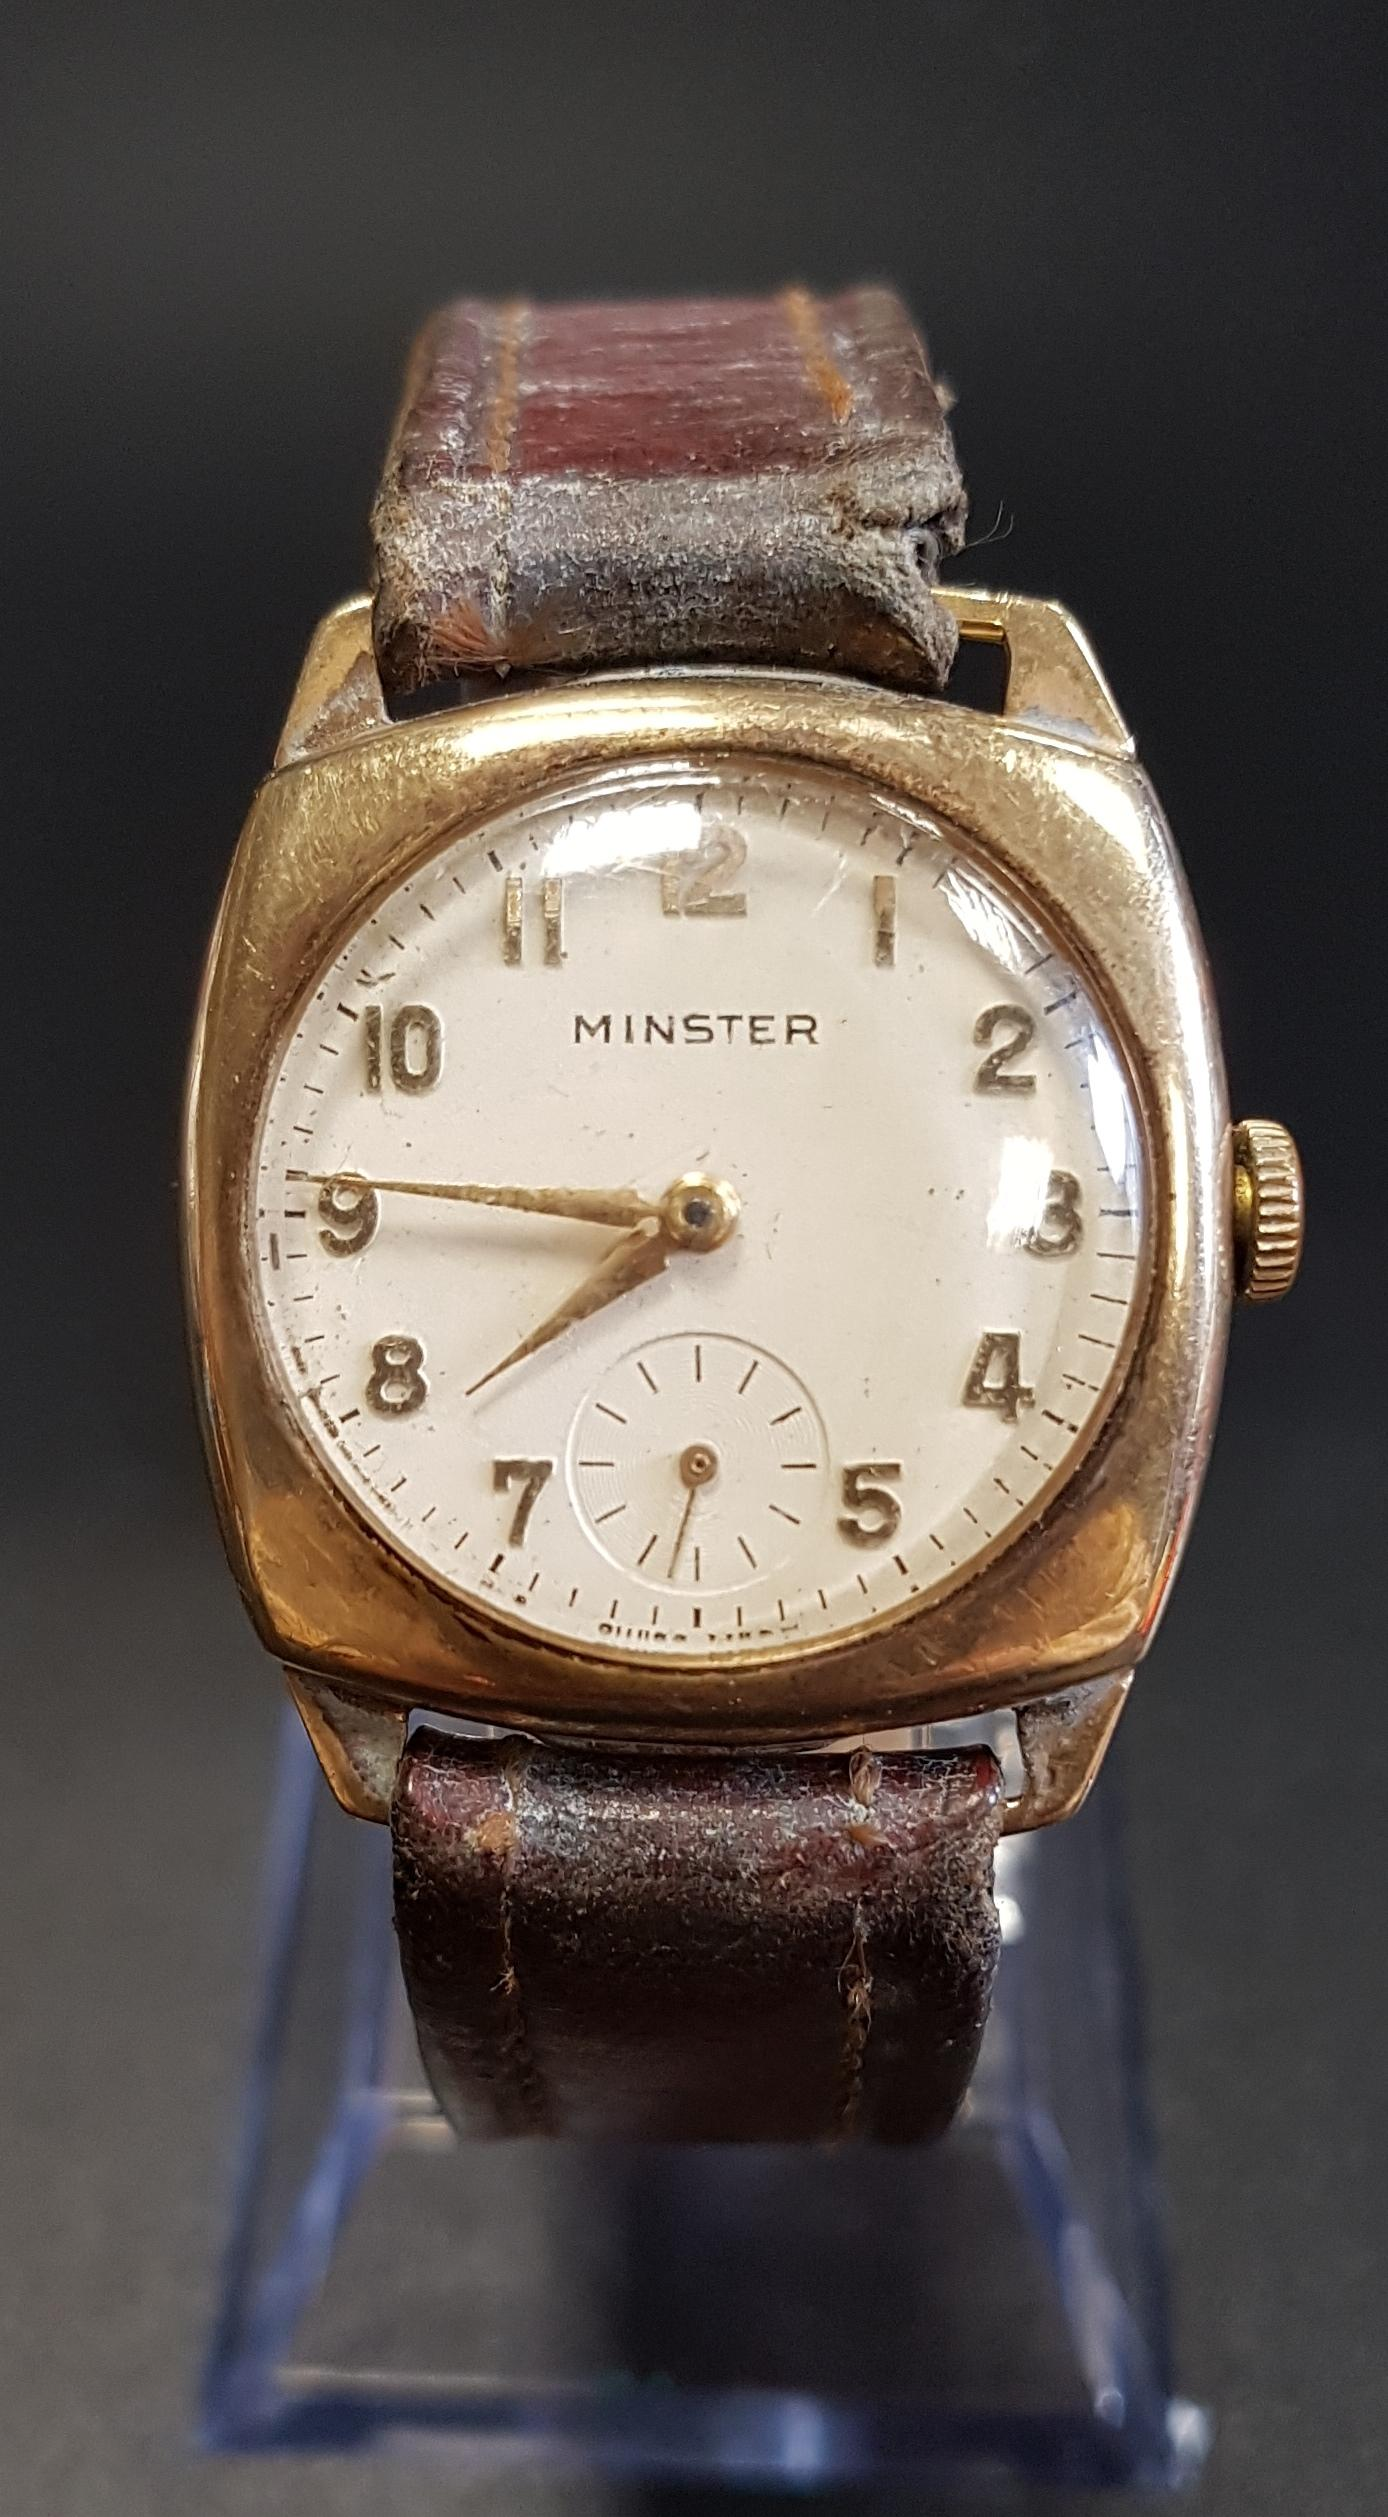 Lot 82 - NINE CARAT GOLD CASED MINSTER WRISTWATCH the cream dial with Arabic numerals and subsidiary